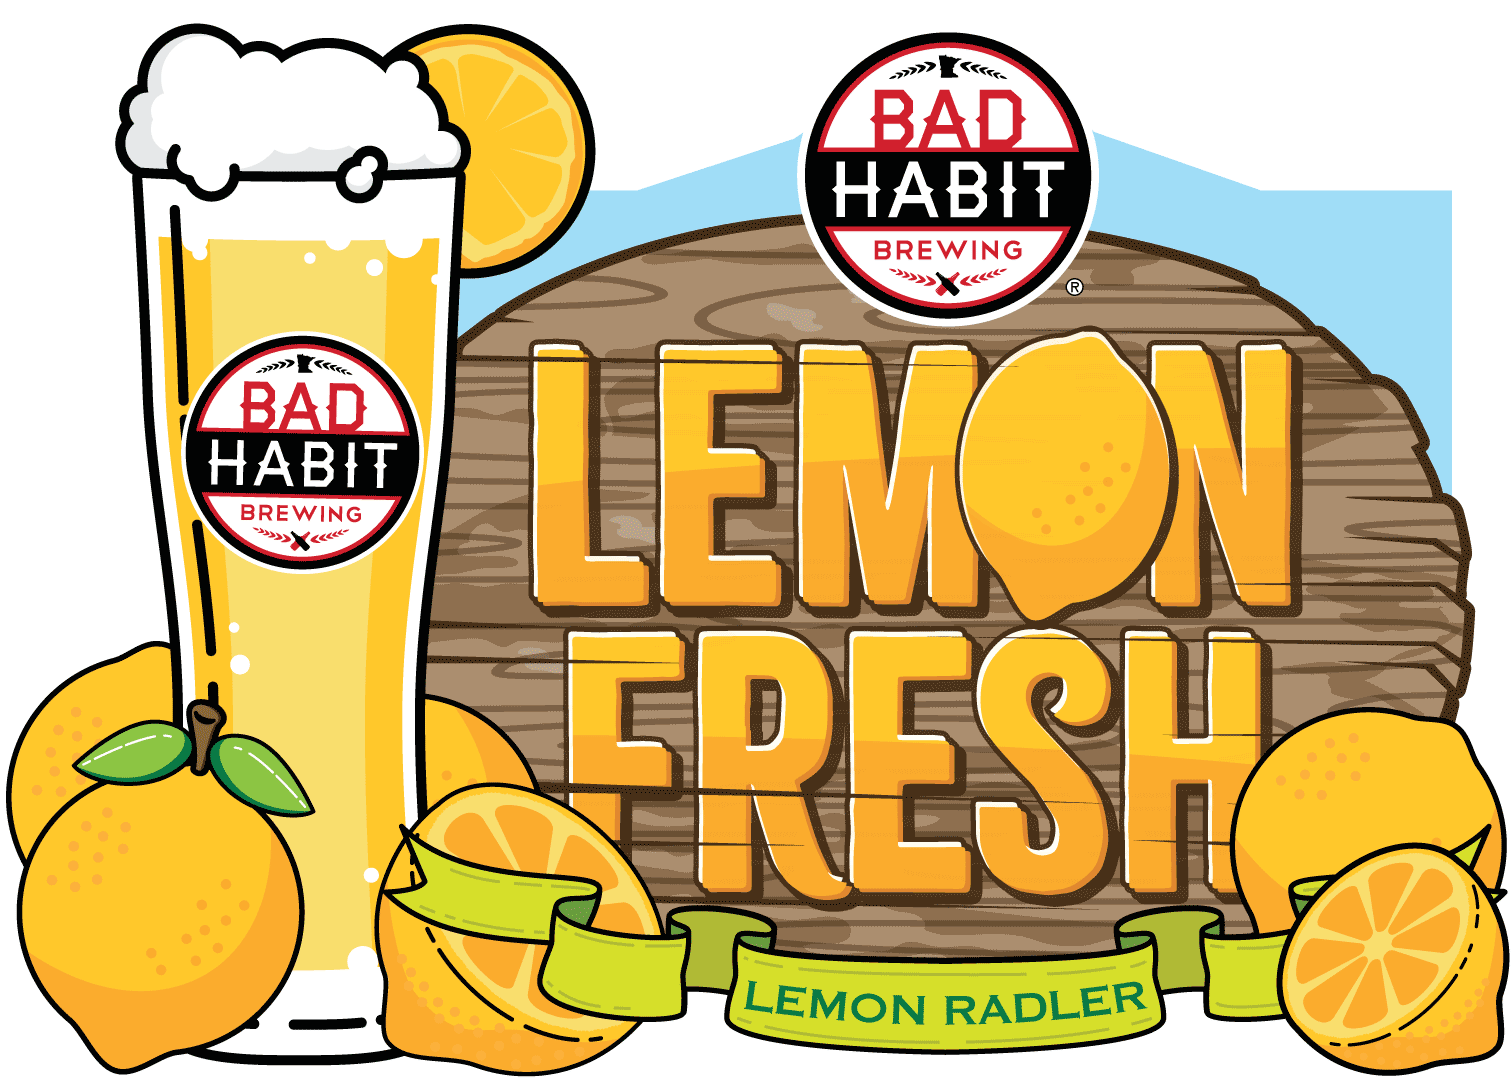 LEMONFRESH - Lemon Radler | 4.2% ABVWhat is better than sitting on the patio with a lemonade? How about sitting on the patio with our Lemon Fresh lemon radler. 50% lemonade, 50% ale, and 100% delicious!